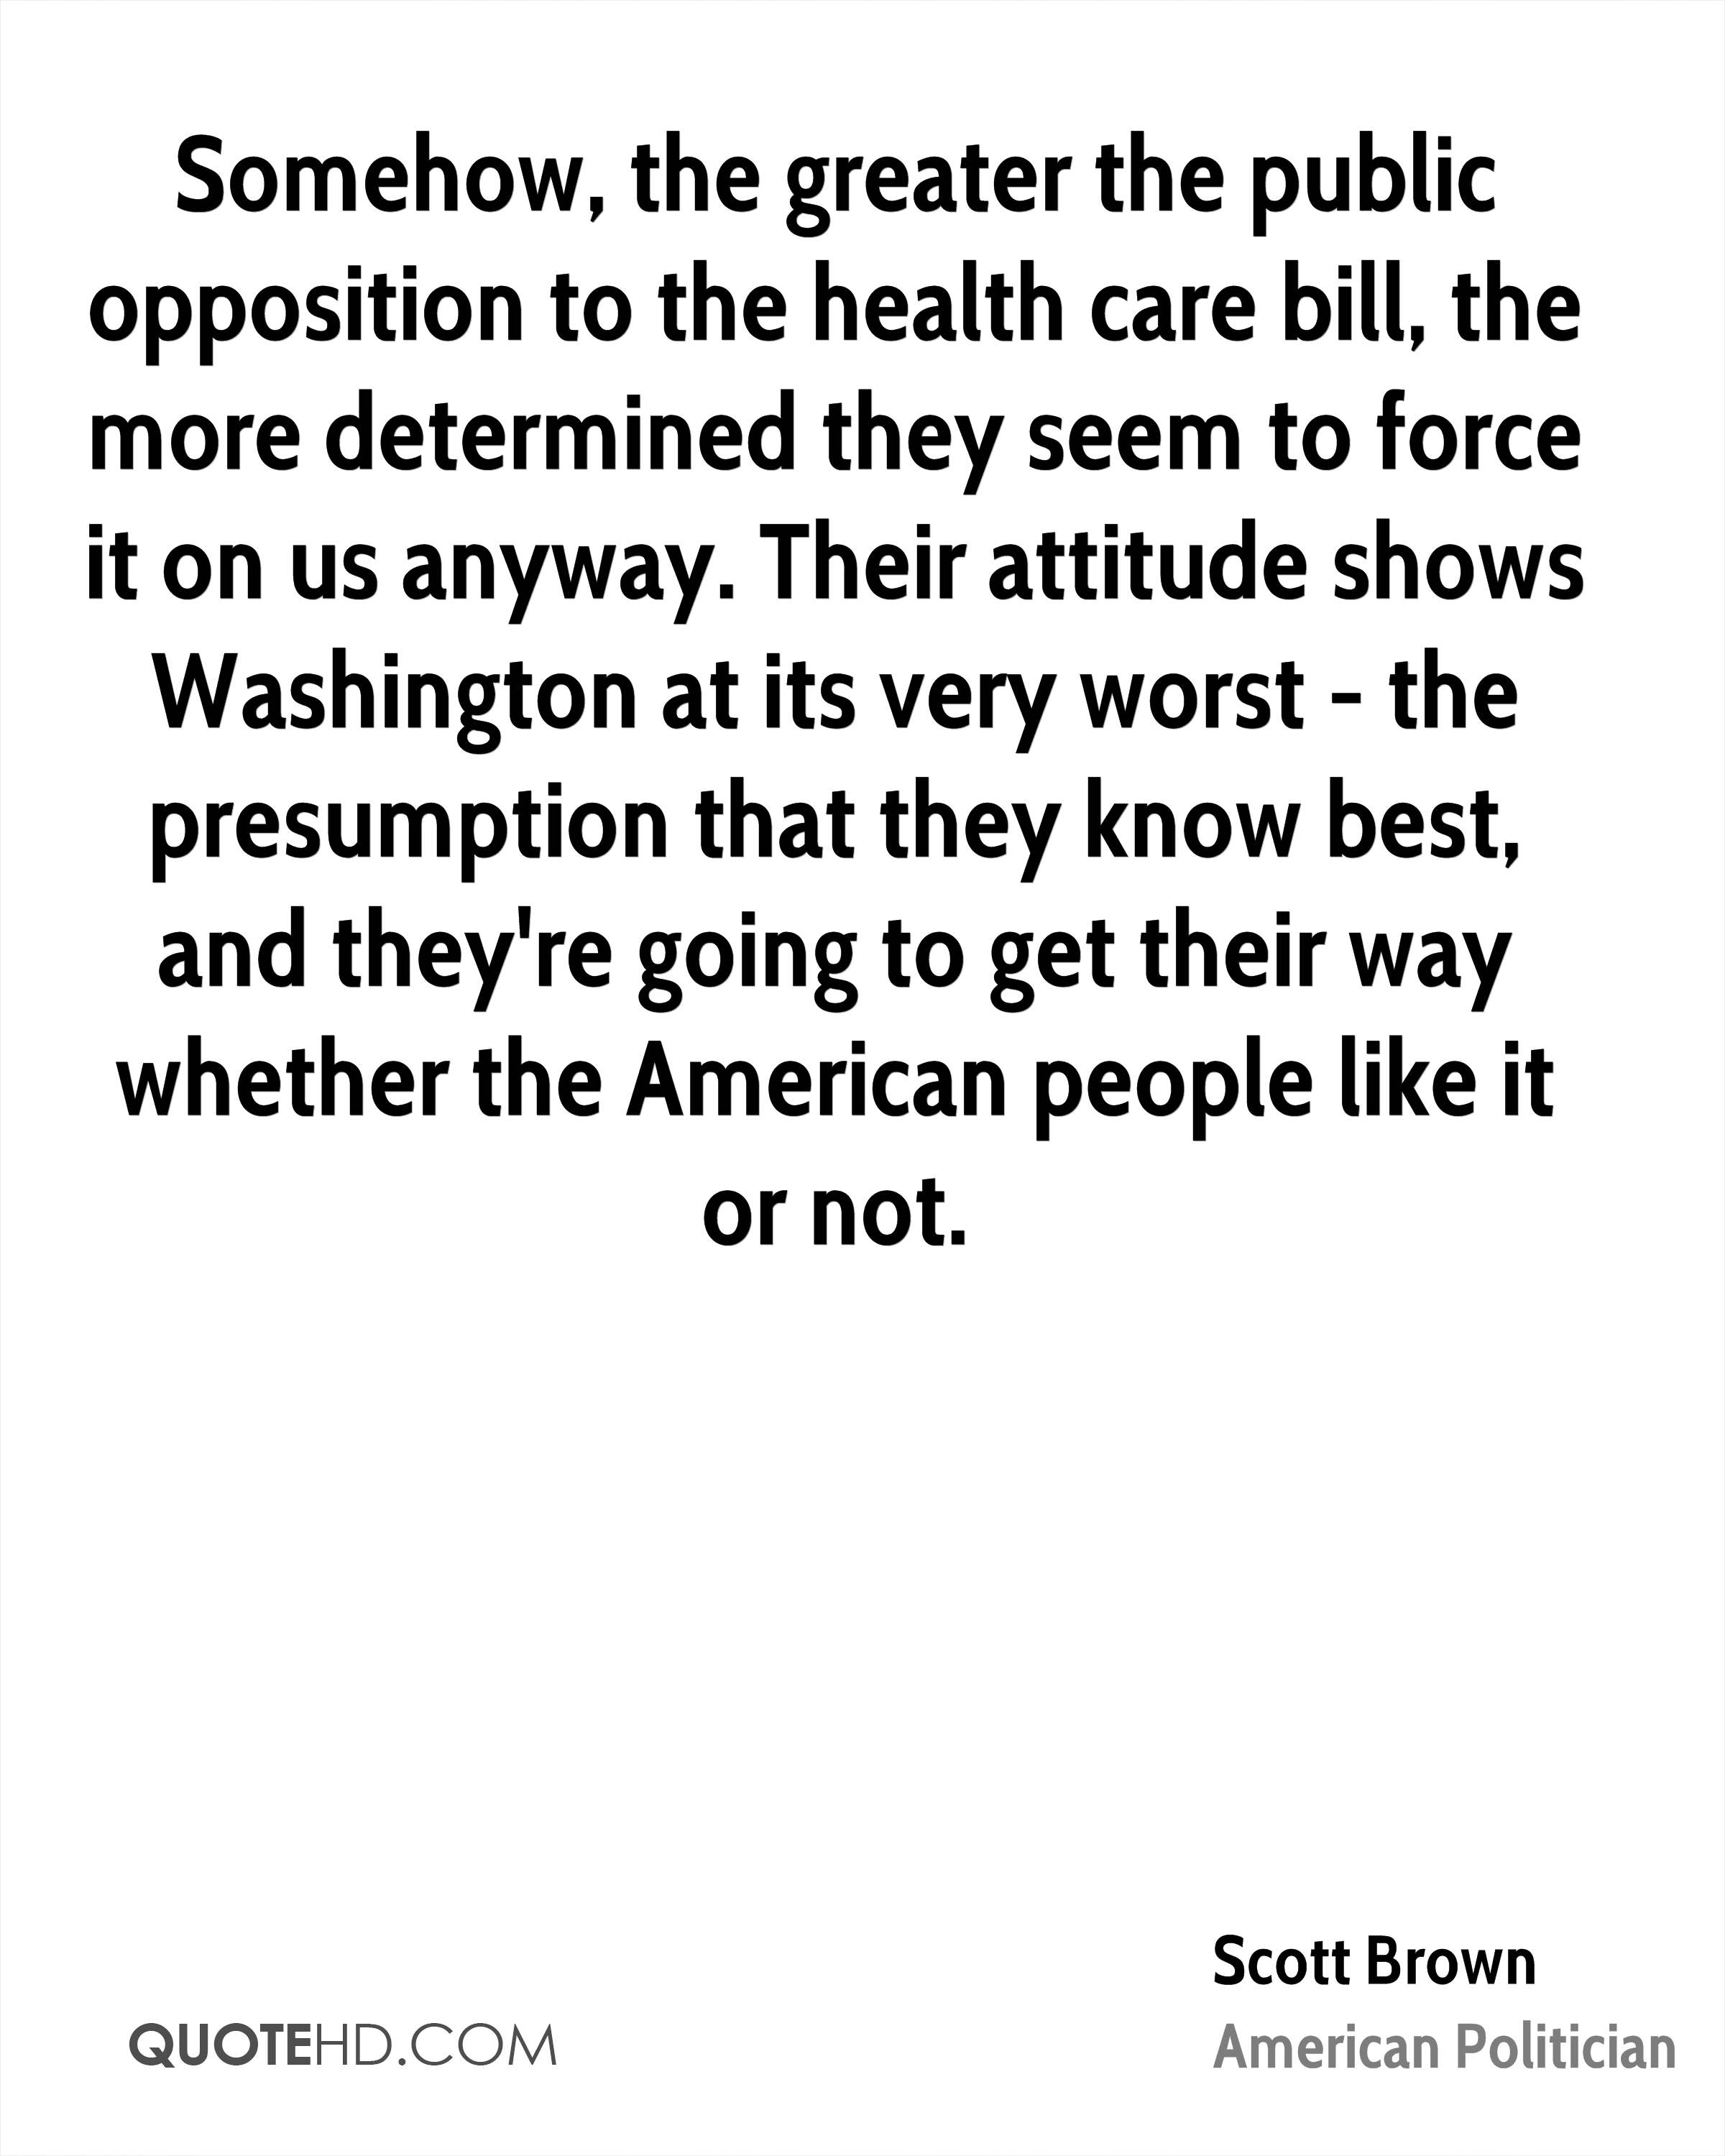 Somehow, the greater the public opposition to the health care bill, the more determined they seem to force it on us anyway. Their attitude shows Washington at its very worst - the presumption that they know best, and they're going to get their way whether the American people like it or not.